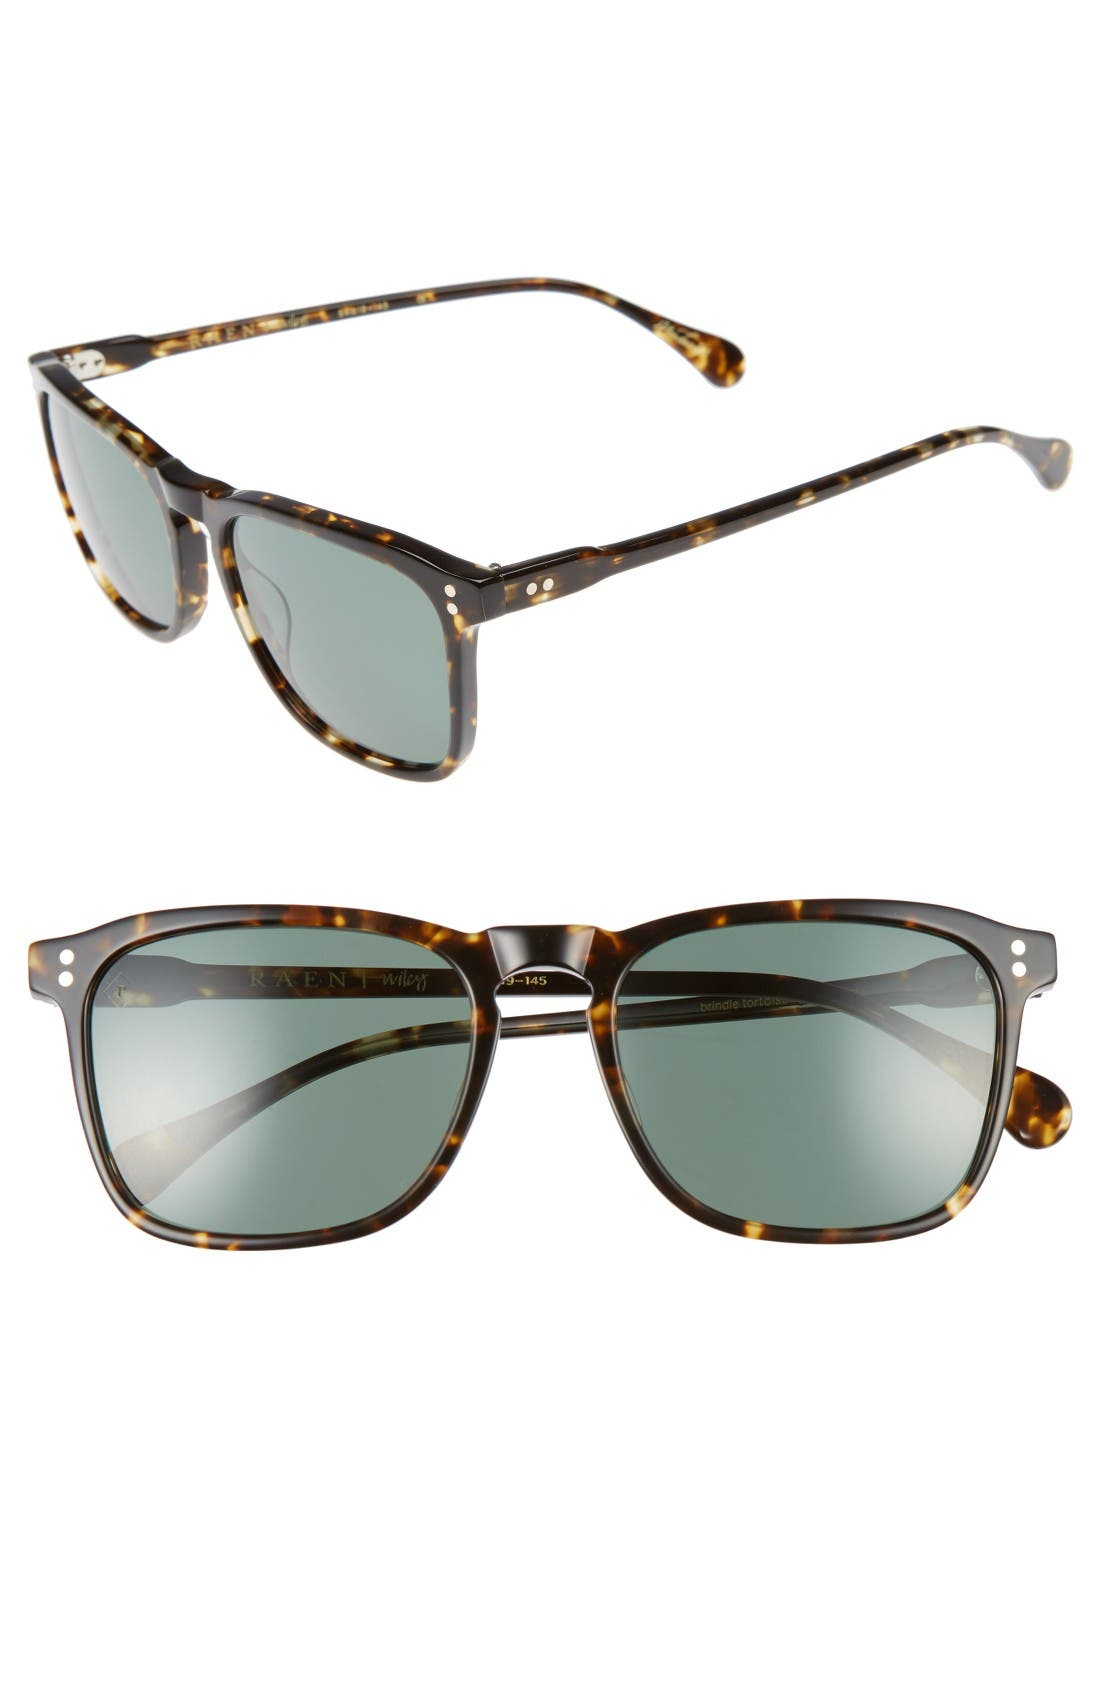 Wiley 54mm Sunglasses,                             Main thumbnail 1, color,                             Brindle Tortoise